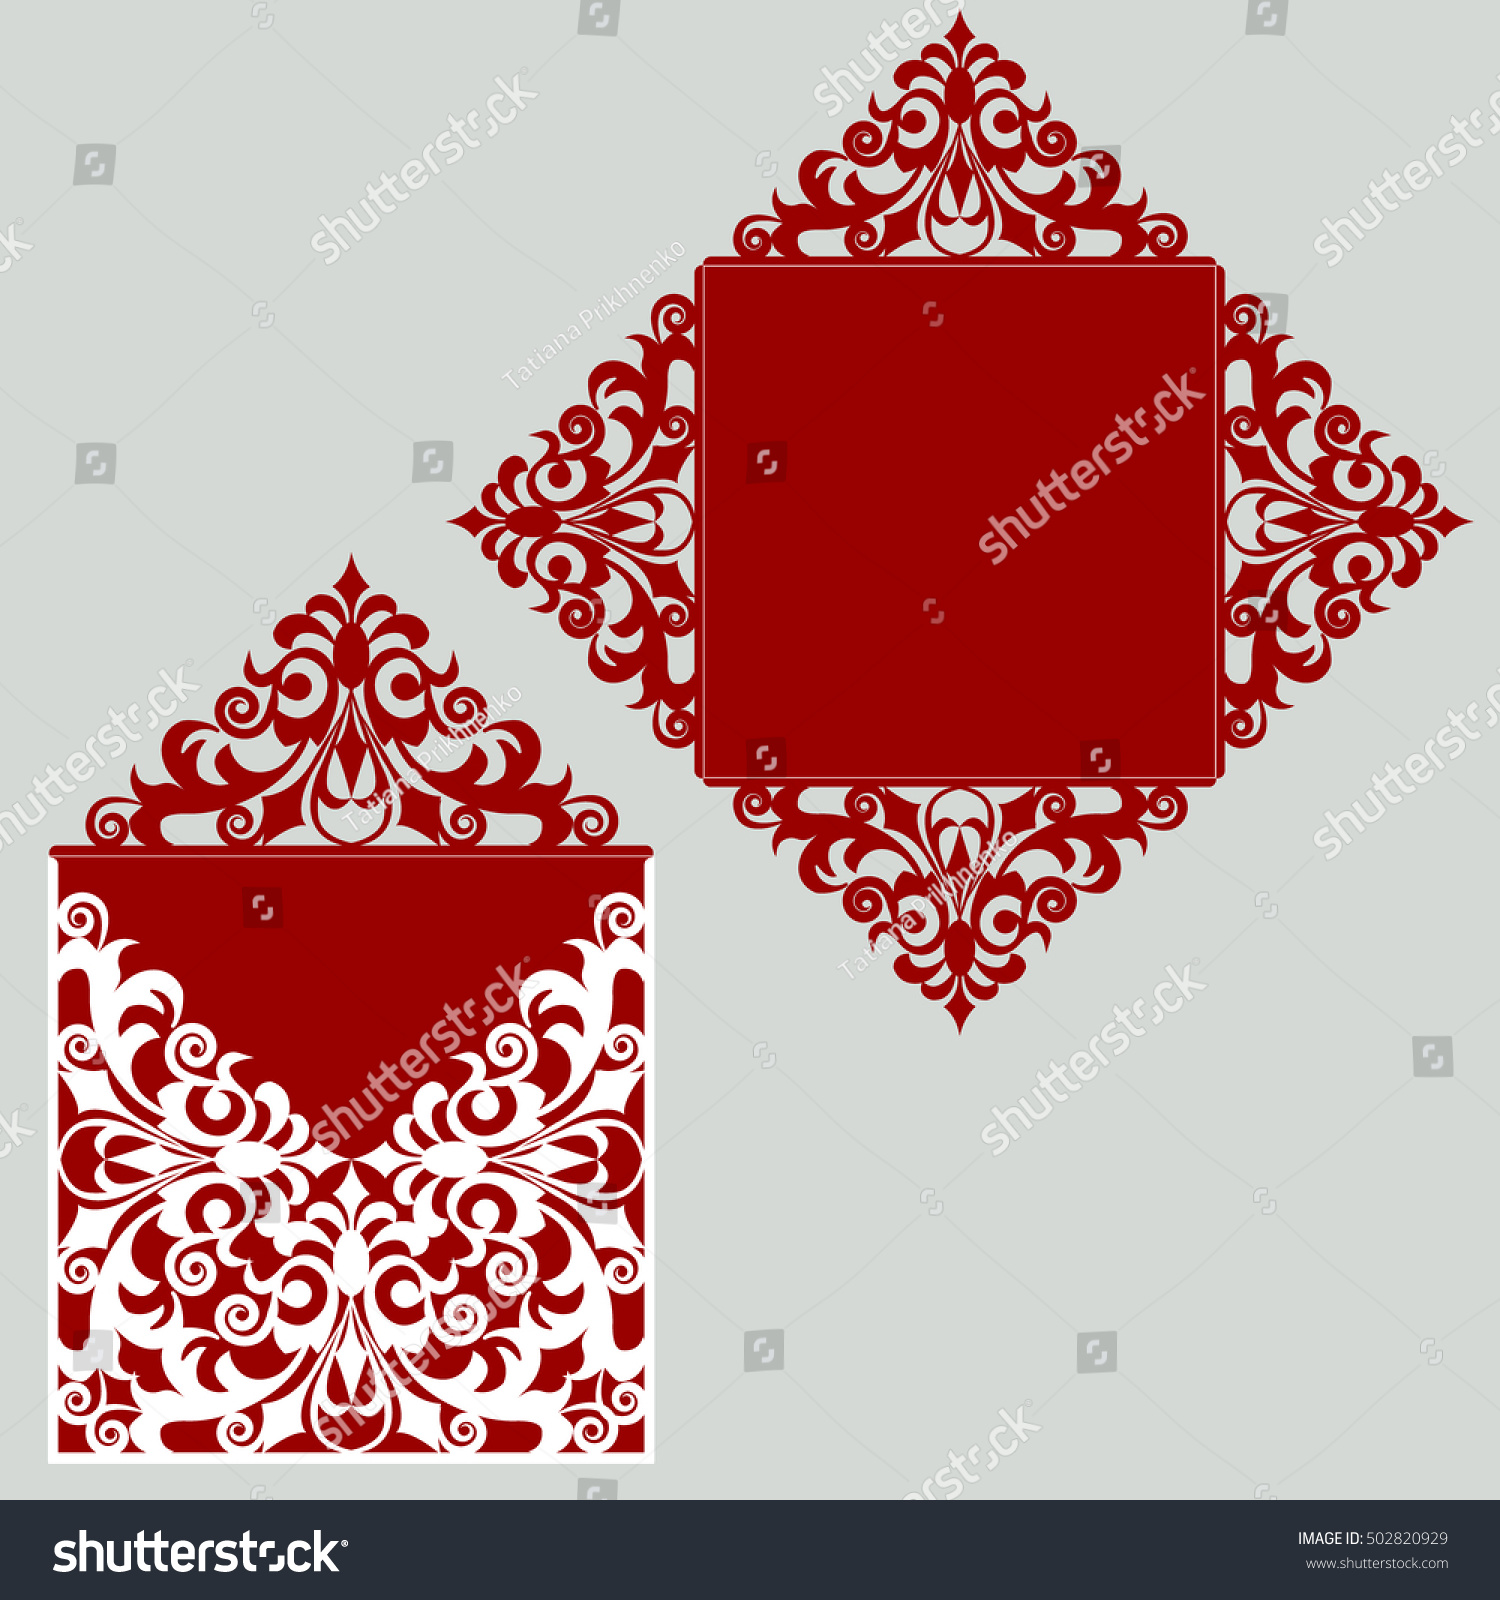 Square Laser Cut Wedding Invitation Template Stock Vector 502820929 ...